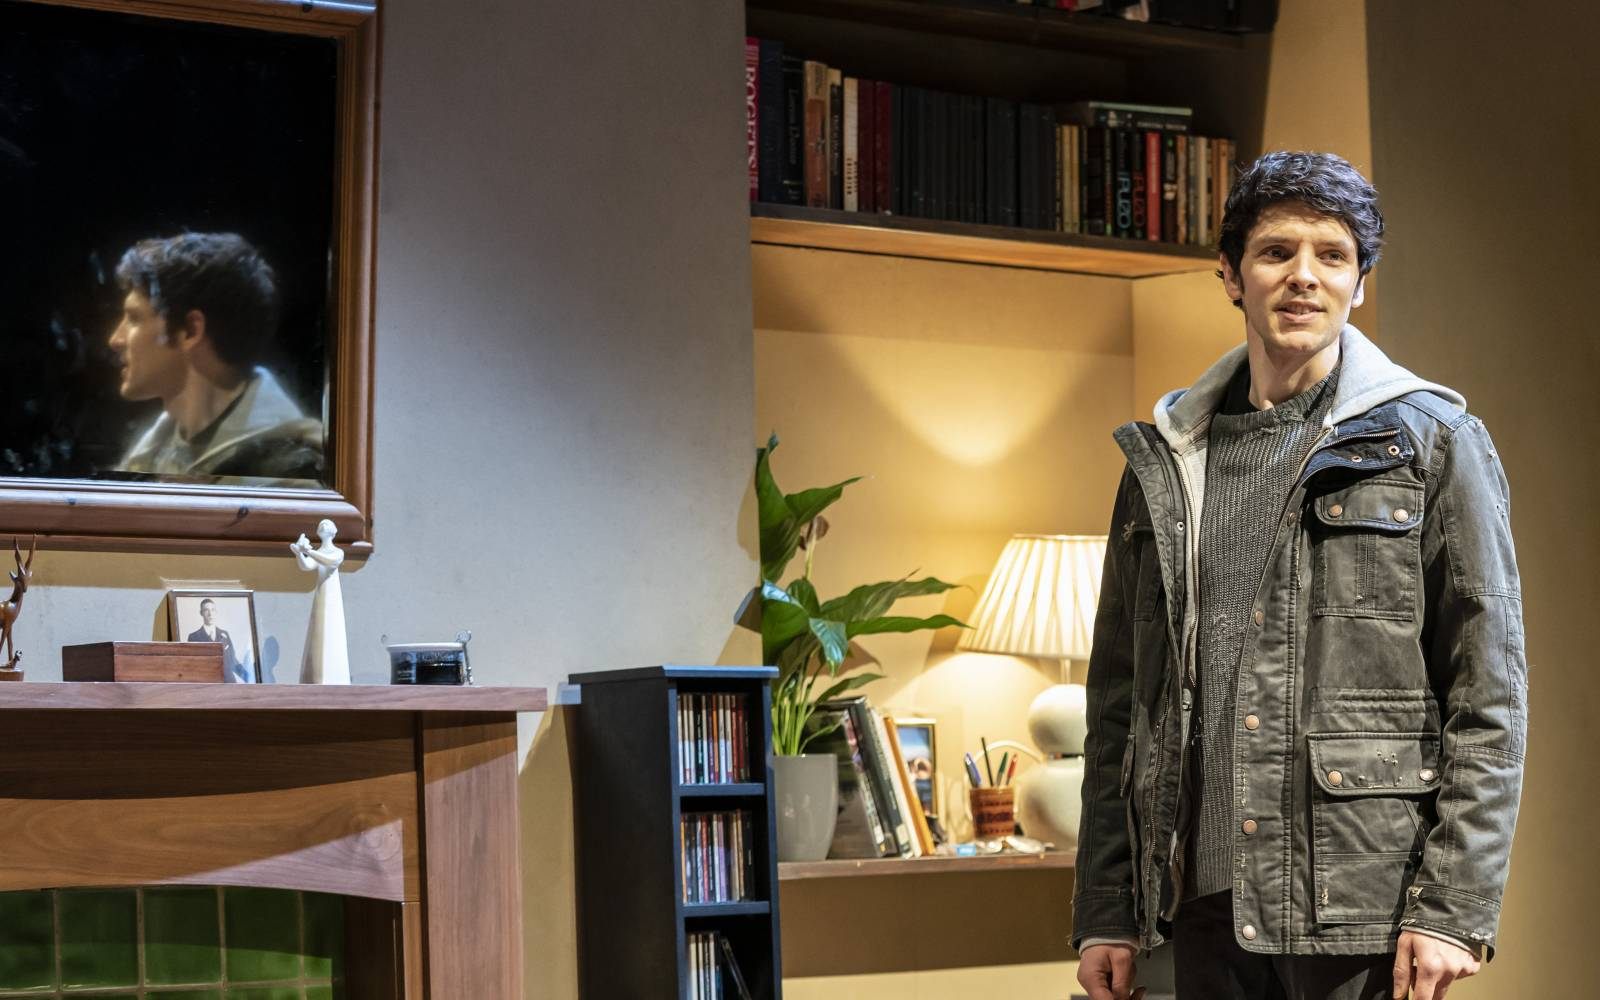 Colin Morgan as Bernard stands in a modern living room, in front of his reflection in the mirror